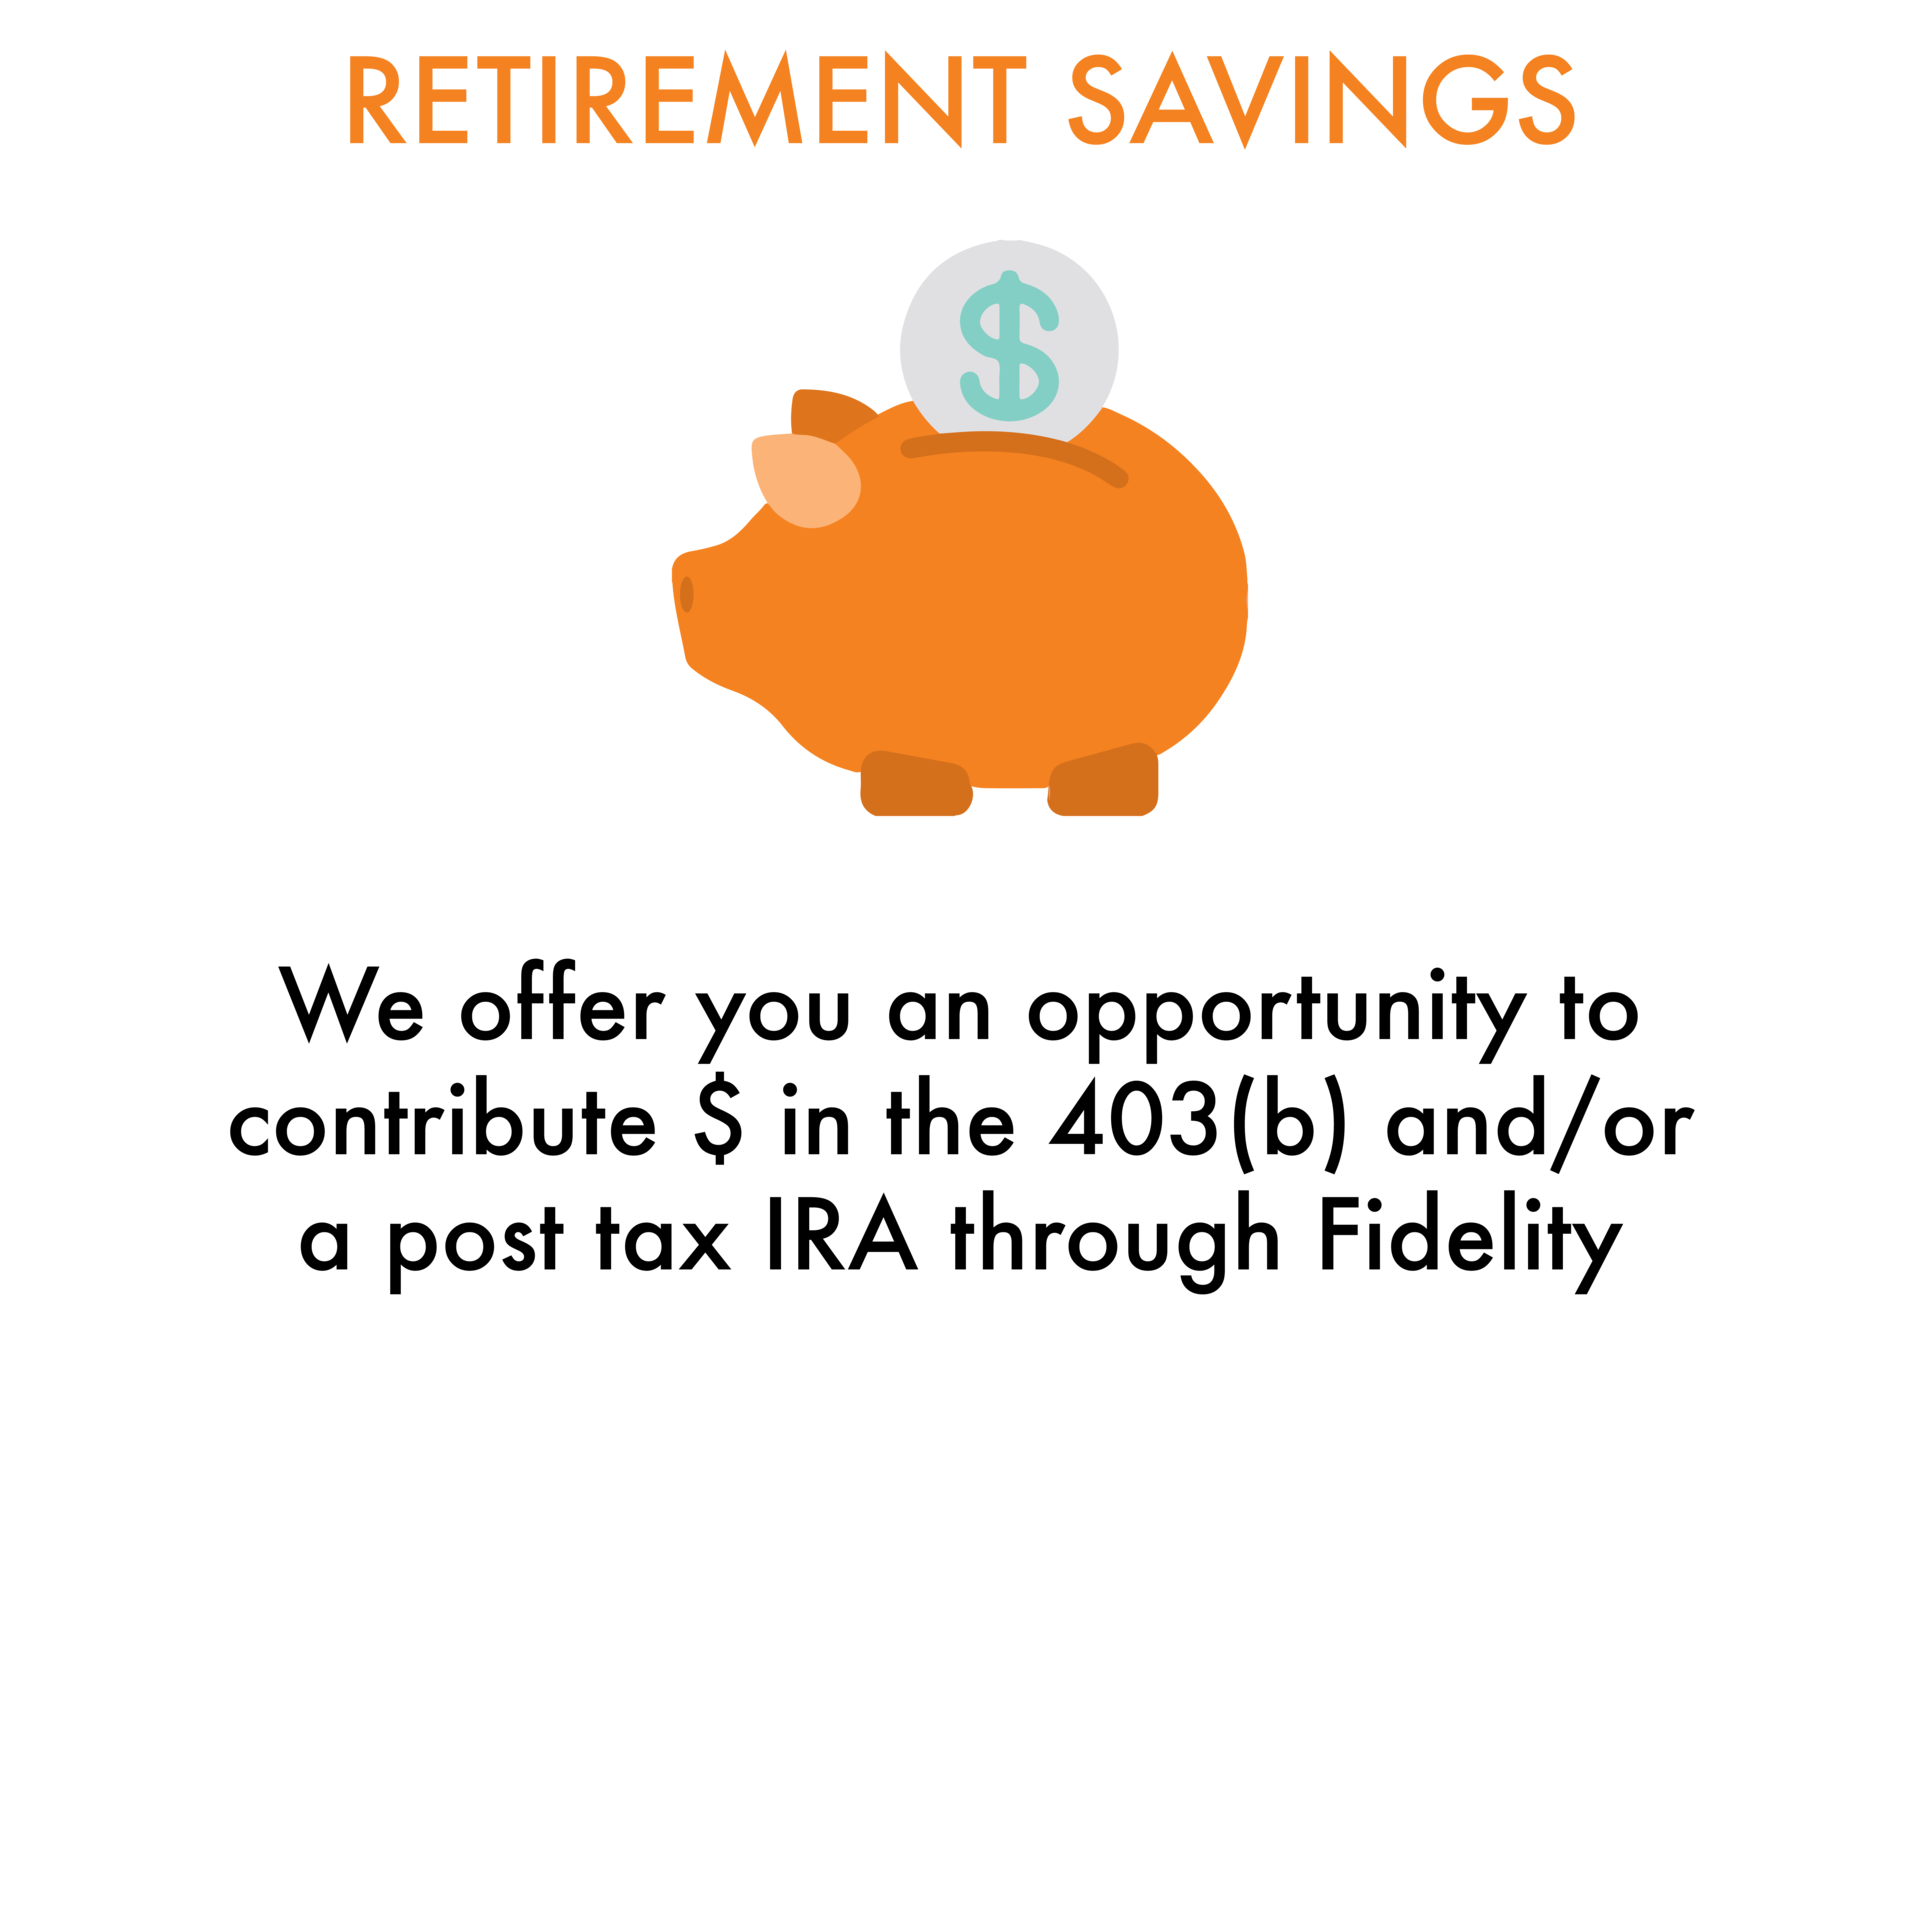 Retirement Savings: We offer you an opportunity to contribute $ in the 403(b) and/or a post tax IRA through Fidelity